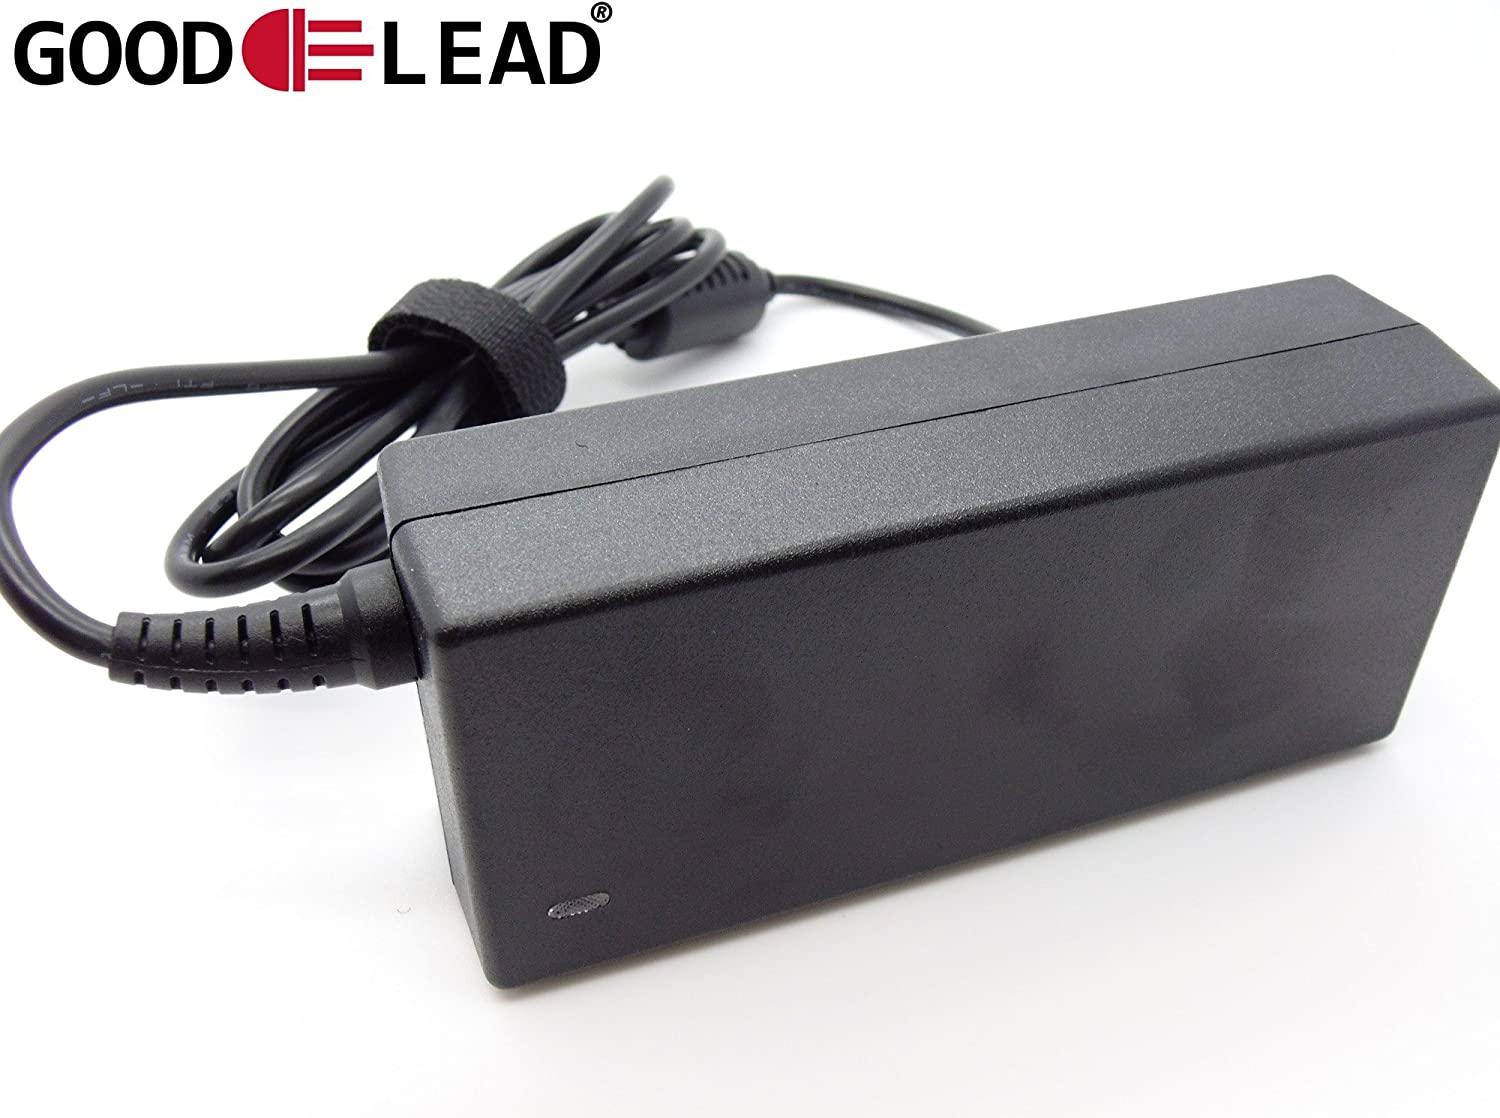 GOOD LEAD YAMAHA P155 16 Volt 3 Amp Mains AC//DC Power Supply Which Is Compatible With YAMAHA P155 Device Charger Adapter Adaptor Power Lead Switch Mode Power Supply